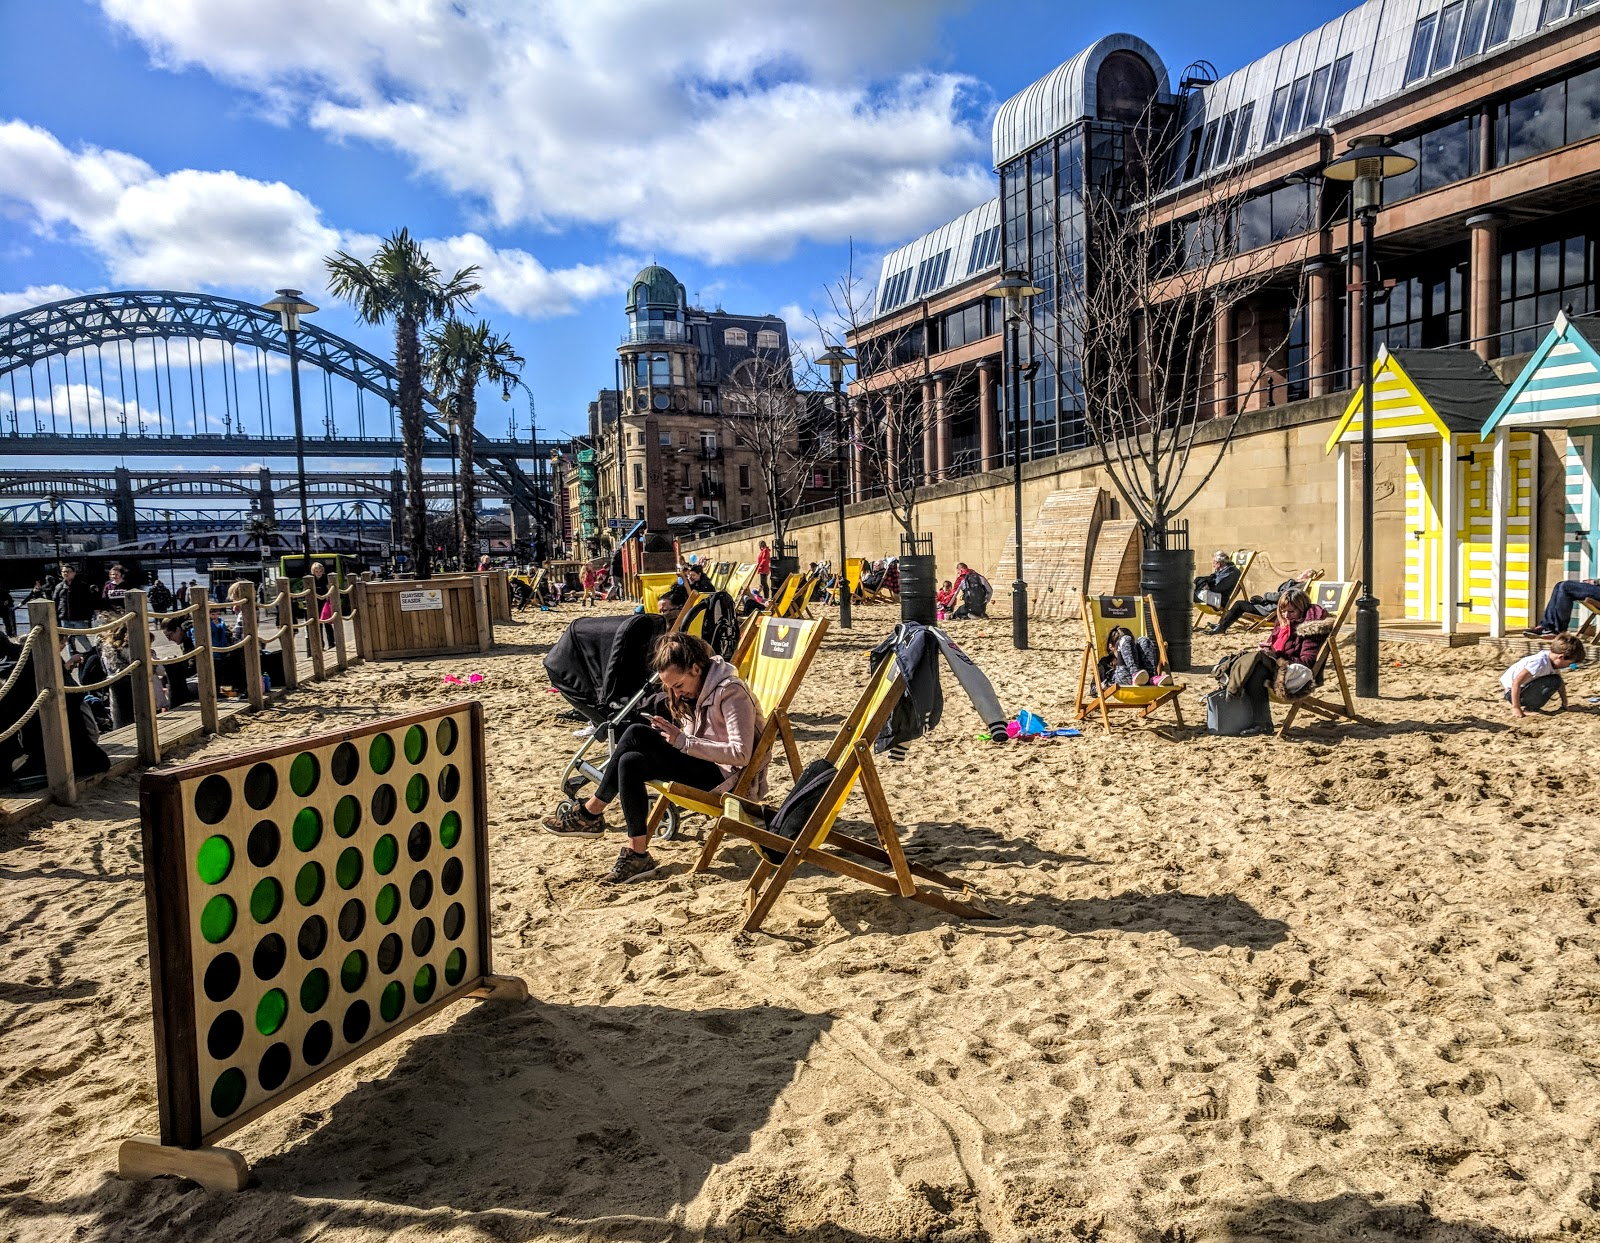 Visiting Newcastle's Quayside Seaside & The Little Fishy with Kids